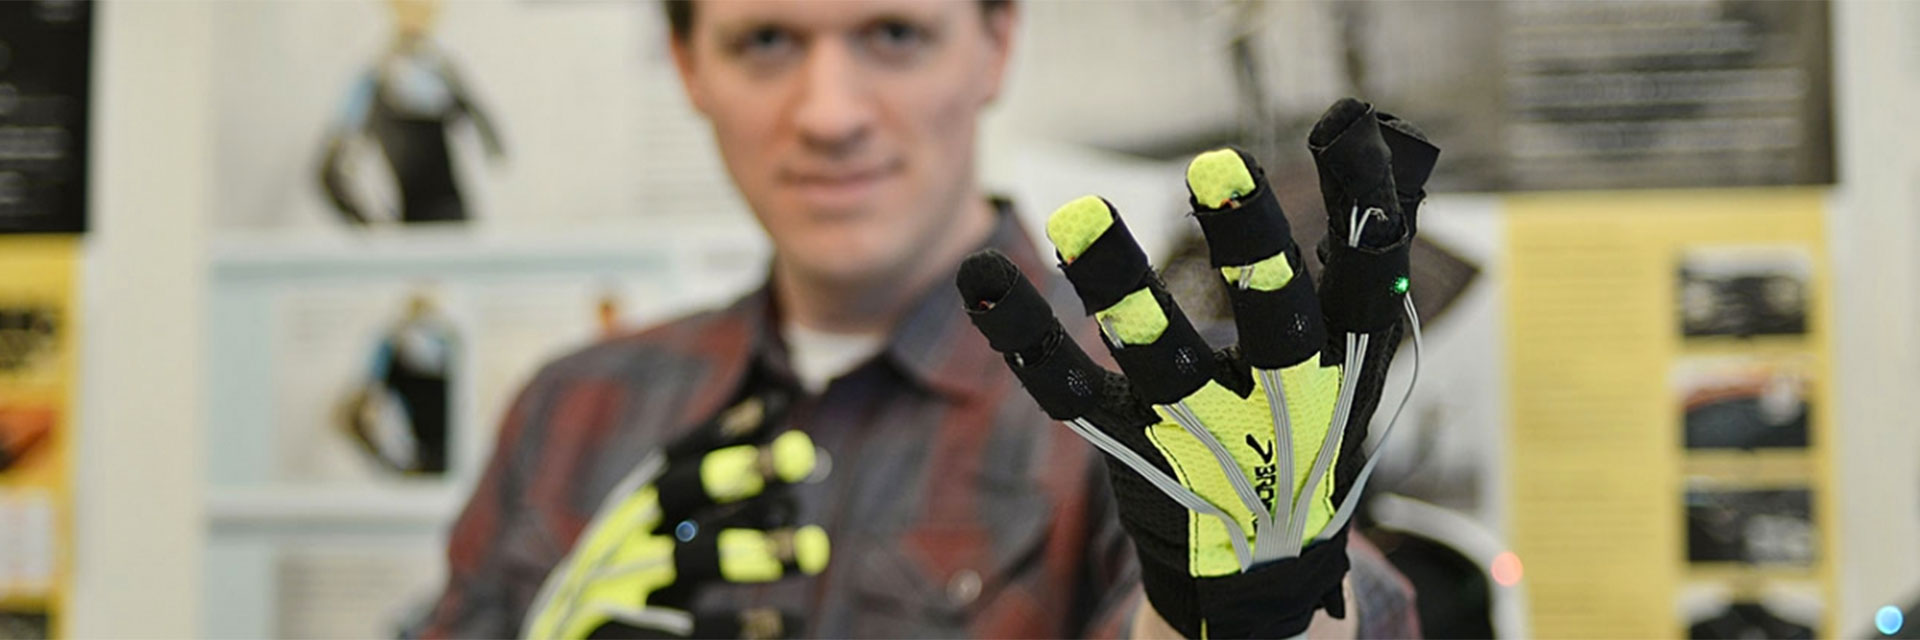 An industrial design student researching wearable technologies wears yellow and black haptic gloves.